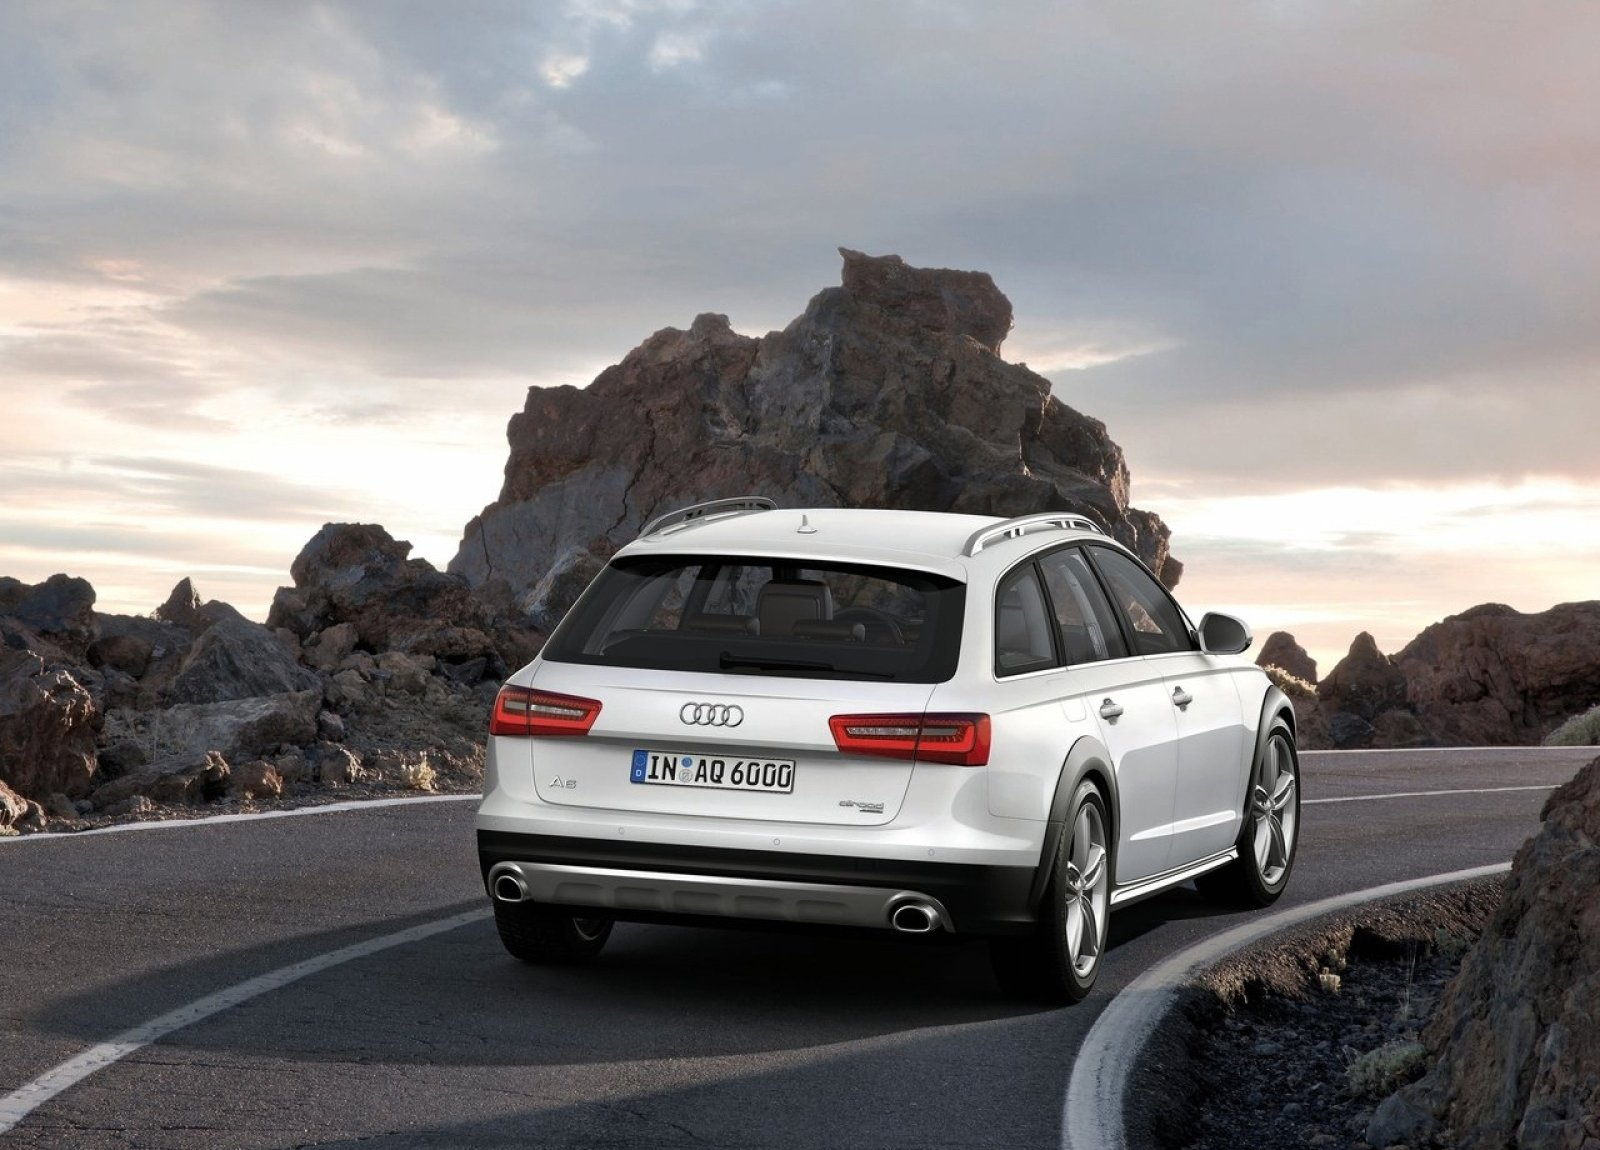 Latest Audi A6 Allroad Hd Wallpapers The World Of Audi Free Download